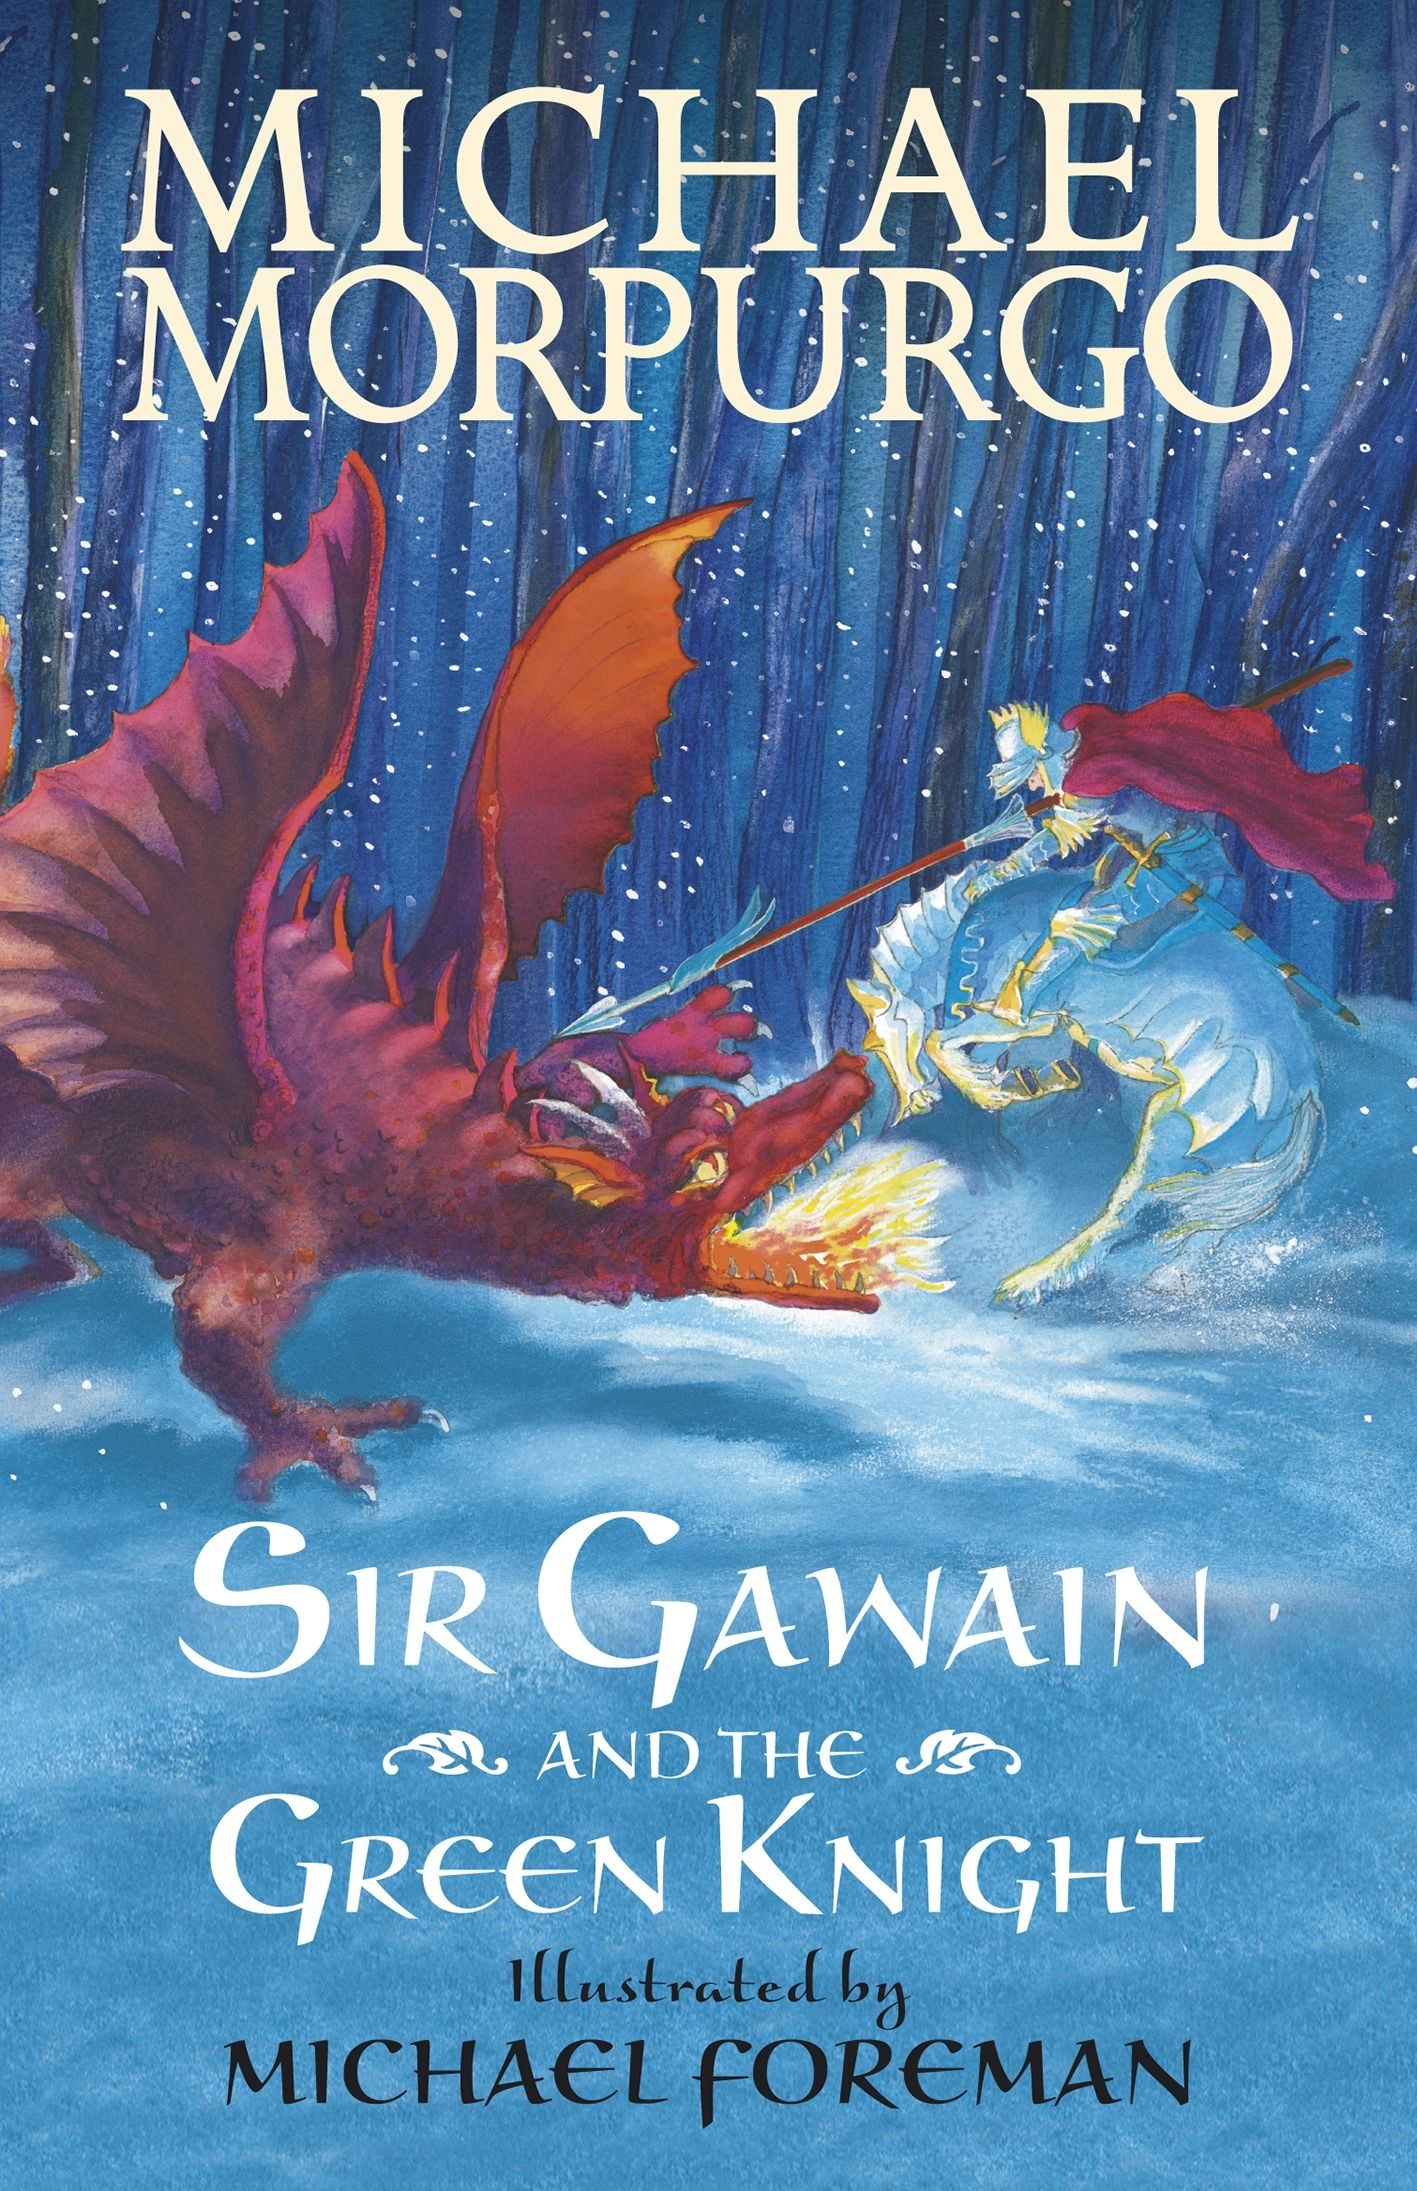 sir gawain ve ye il ouml valye anonim pdf e kitap indir sandalca sir gawain and the green knight by michael morpurgo it s new year s eve in